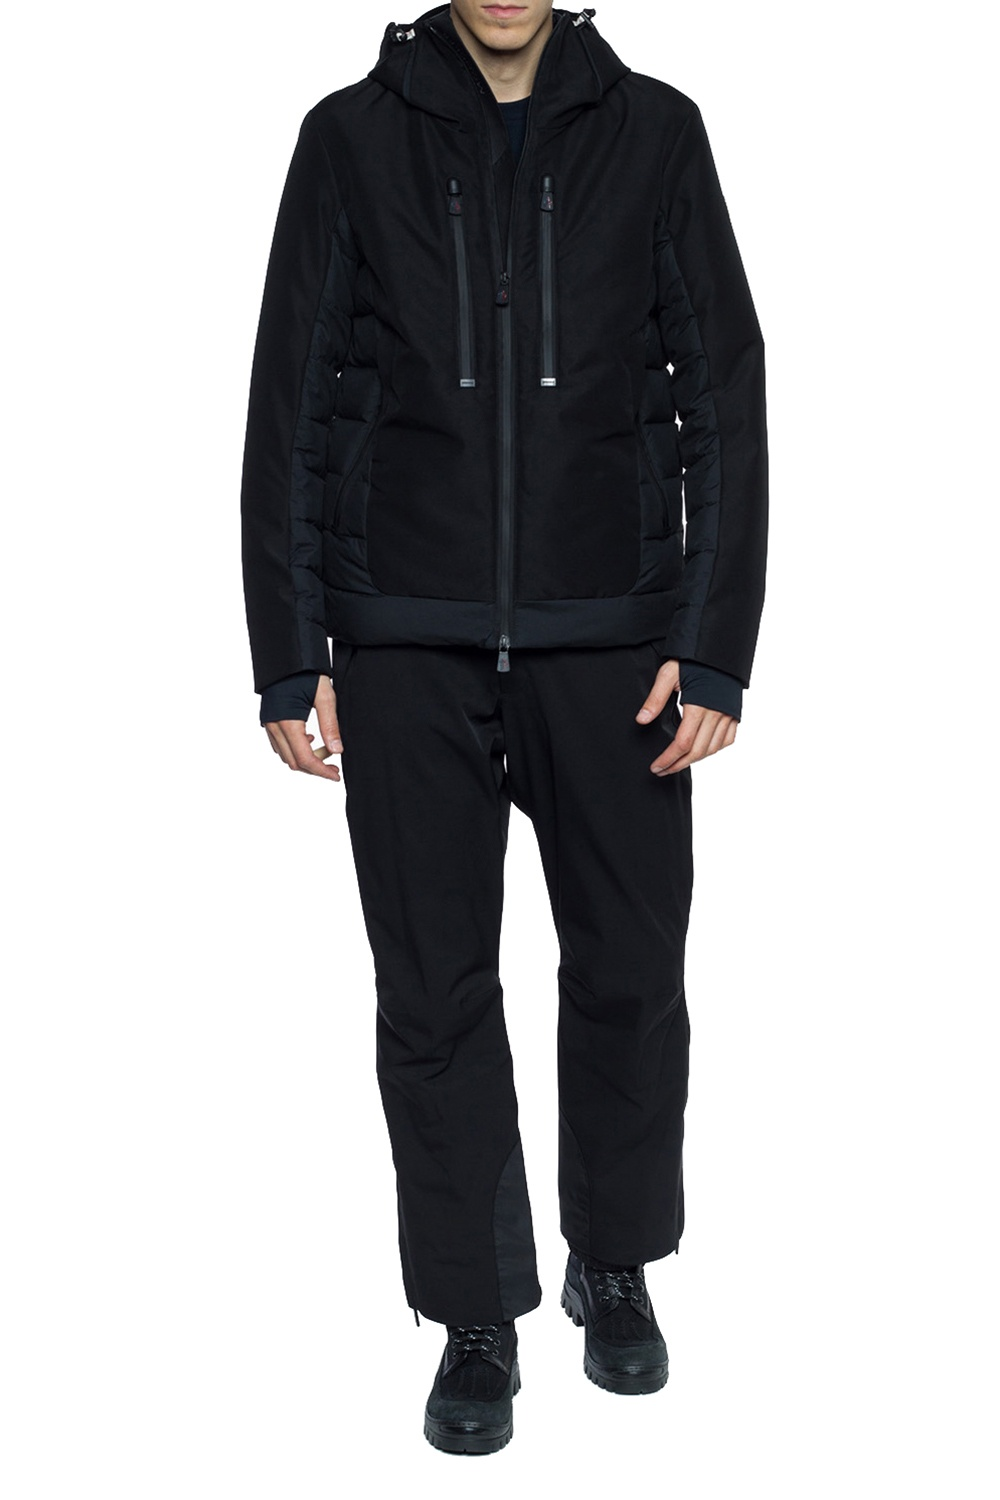 Moncler Grenoble Ski pants